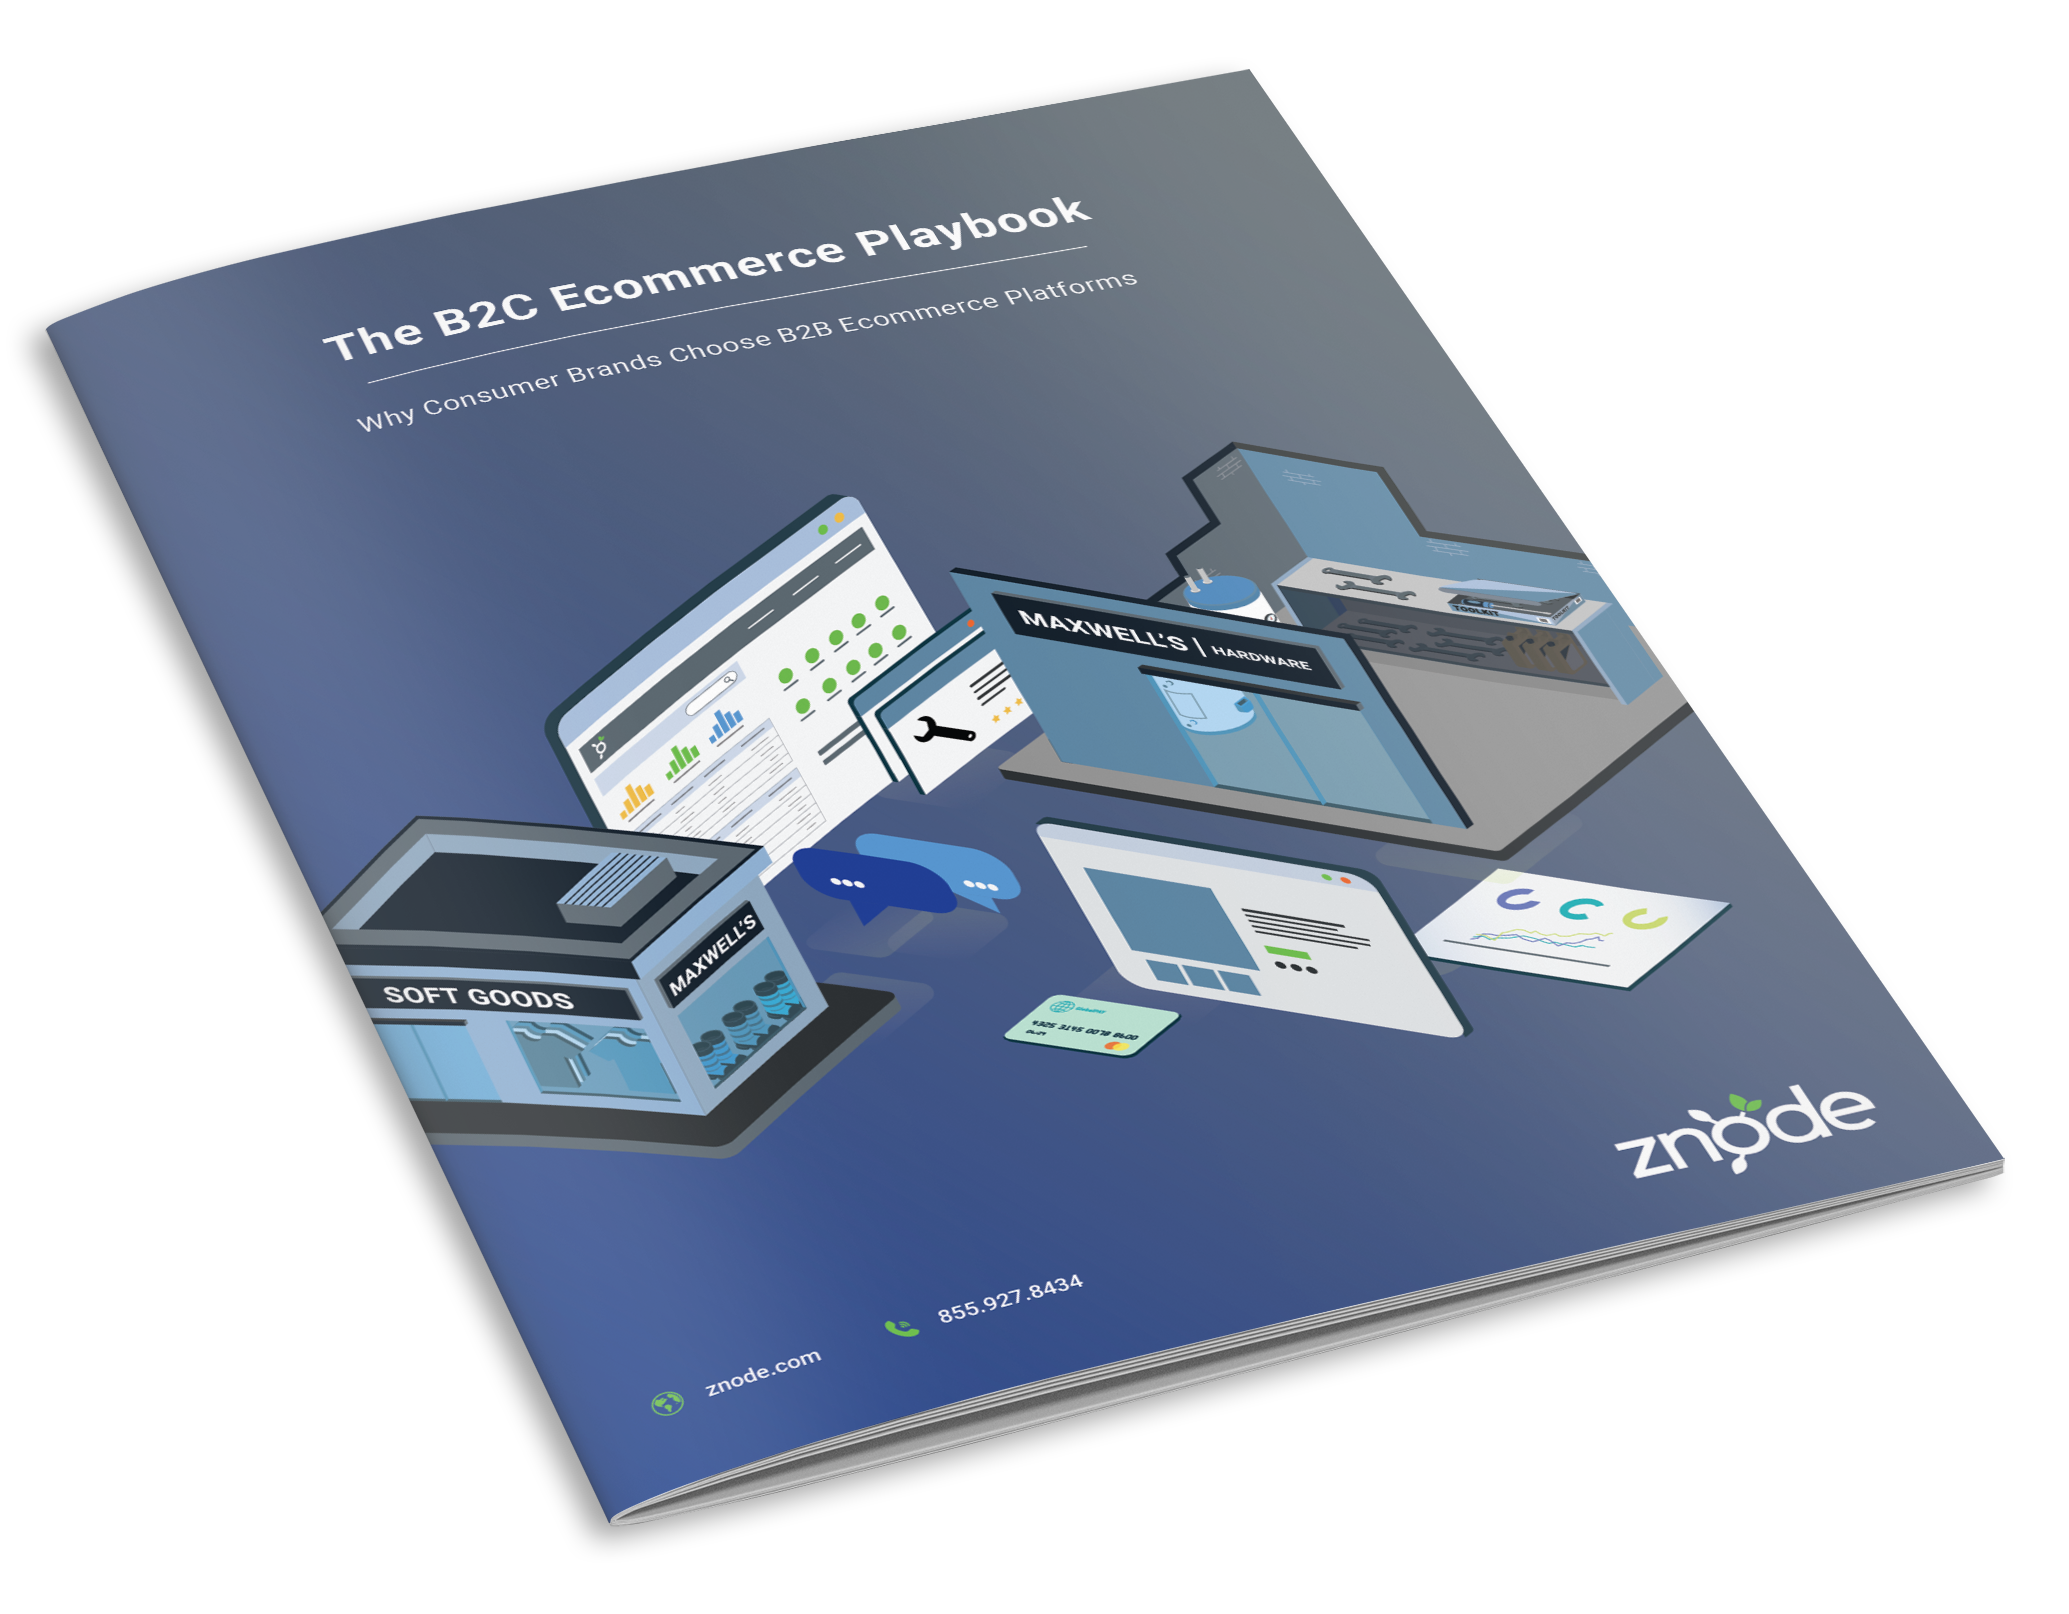 the b2c ecommerce playbook